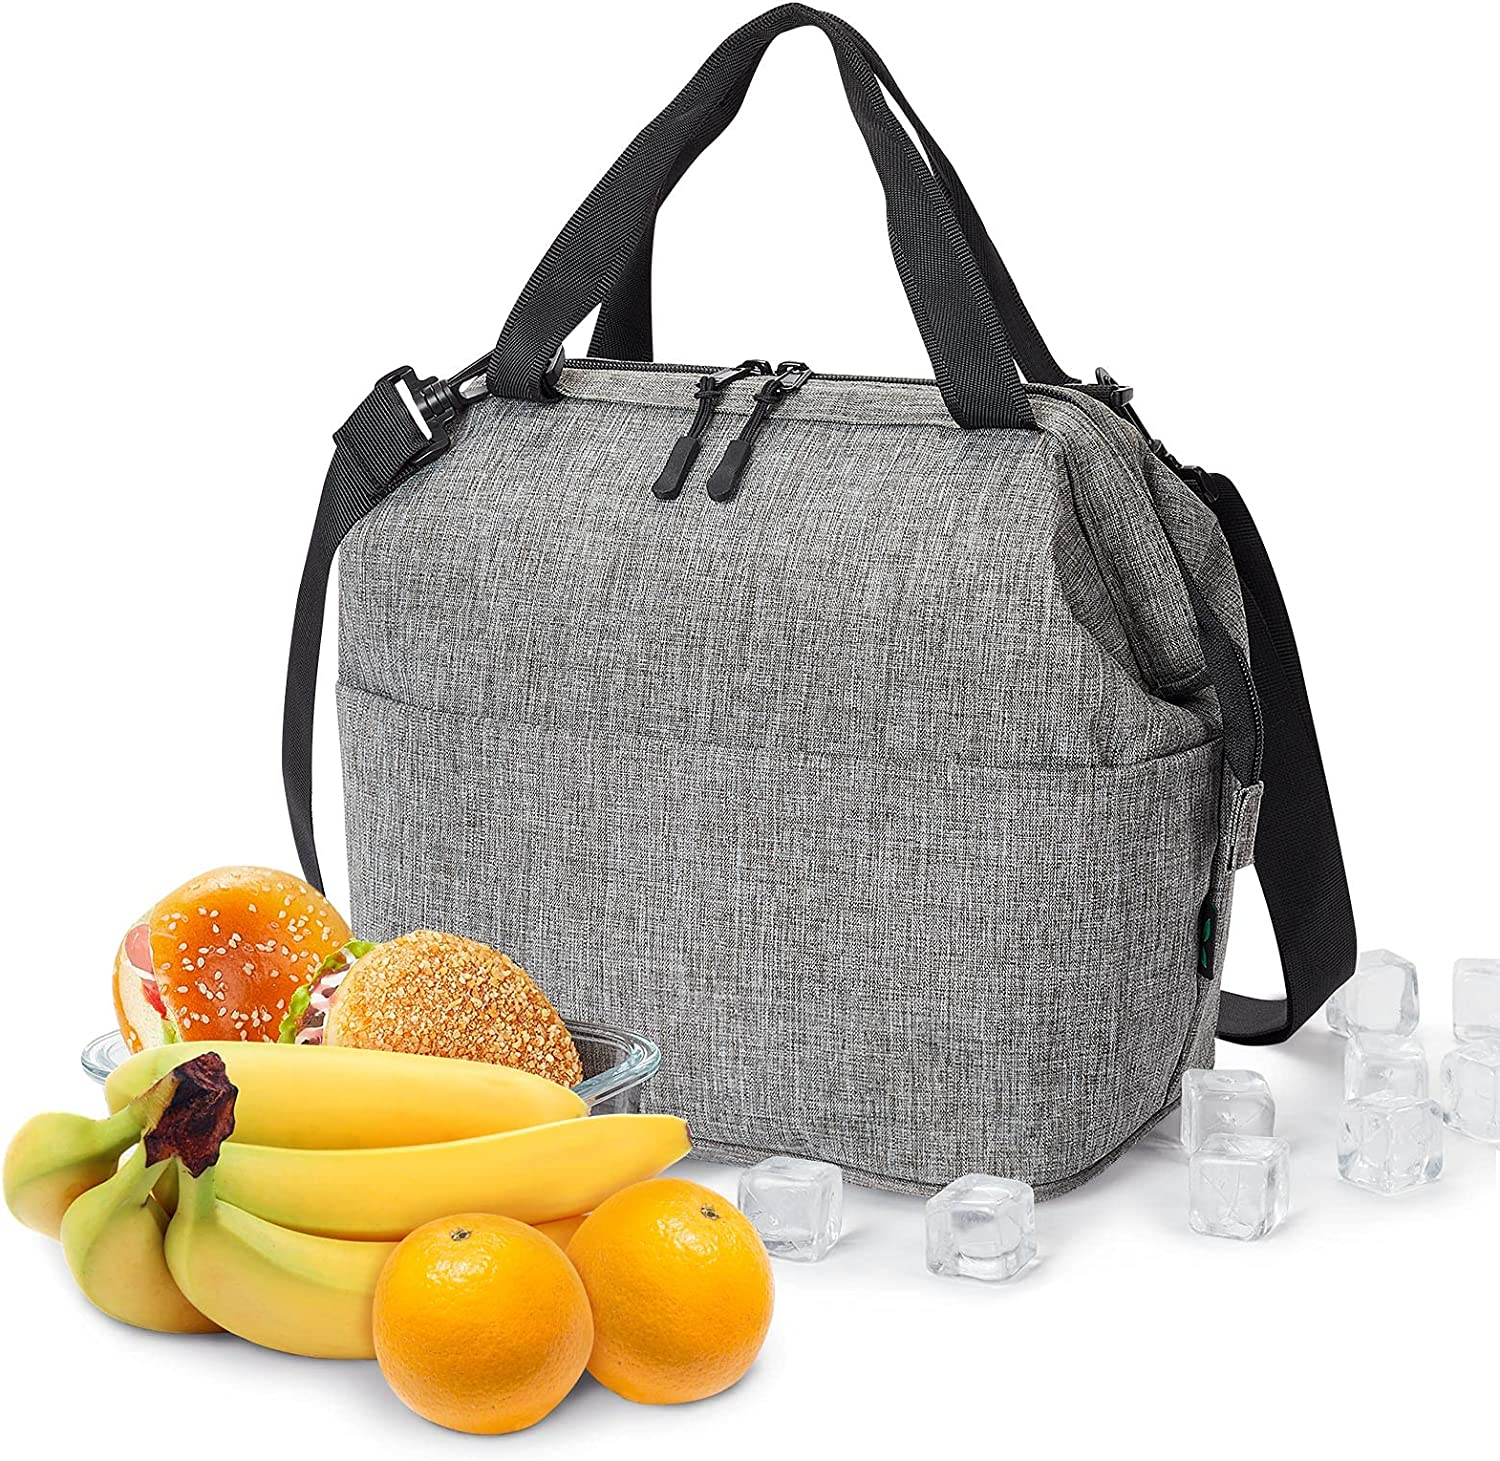 Lunch Box for Women, Insulated Lunch Bag for teen girl, Small Lunch Box 9 Cans Cooler Bag for Work Portable with Shoulder Strap Grey by F40C4TMP